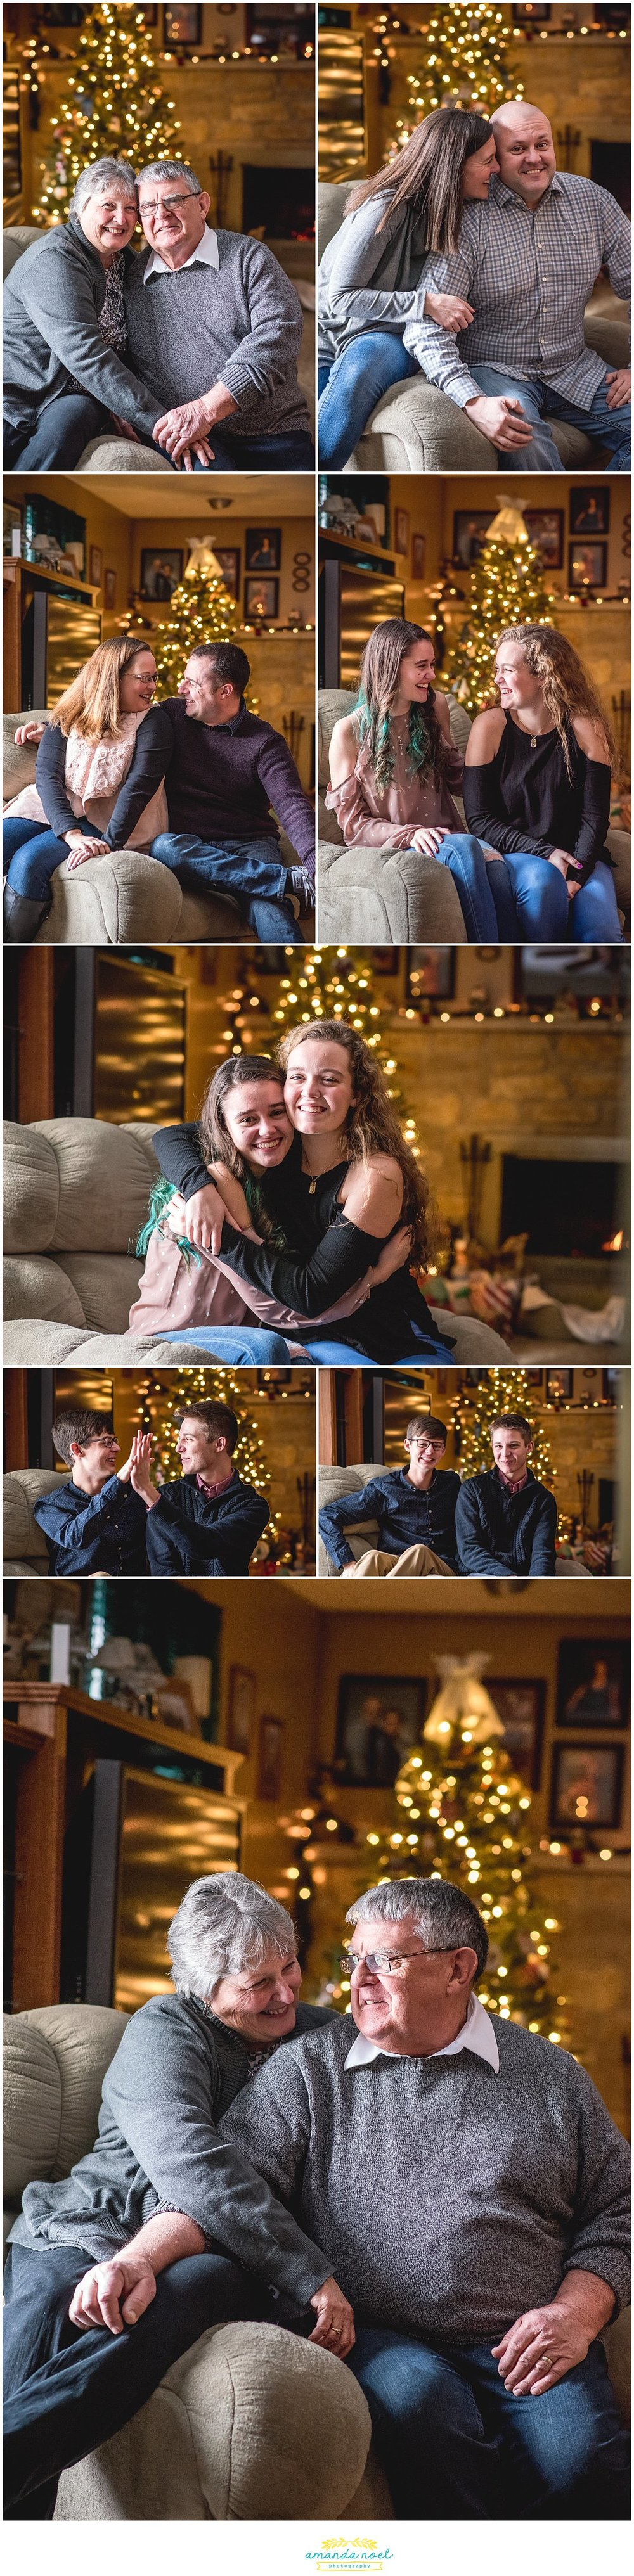 Columbus Ohio family photographer | Amanda Noel Photography | cozy in home extended family session